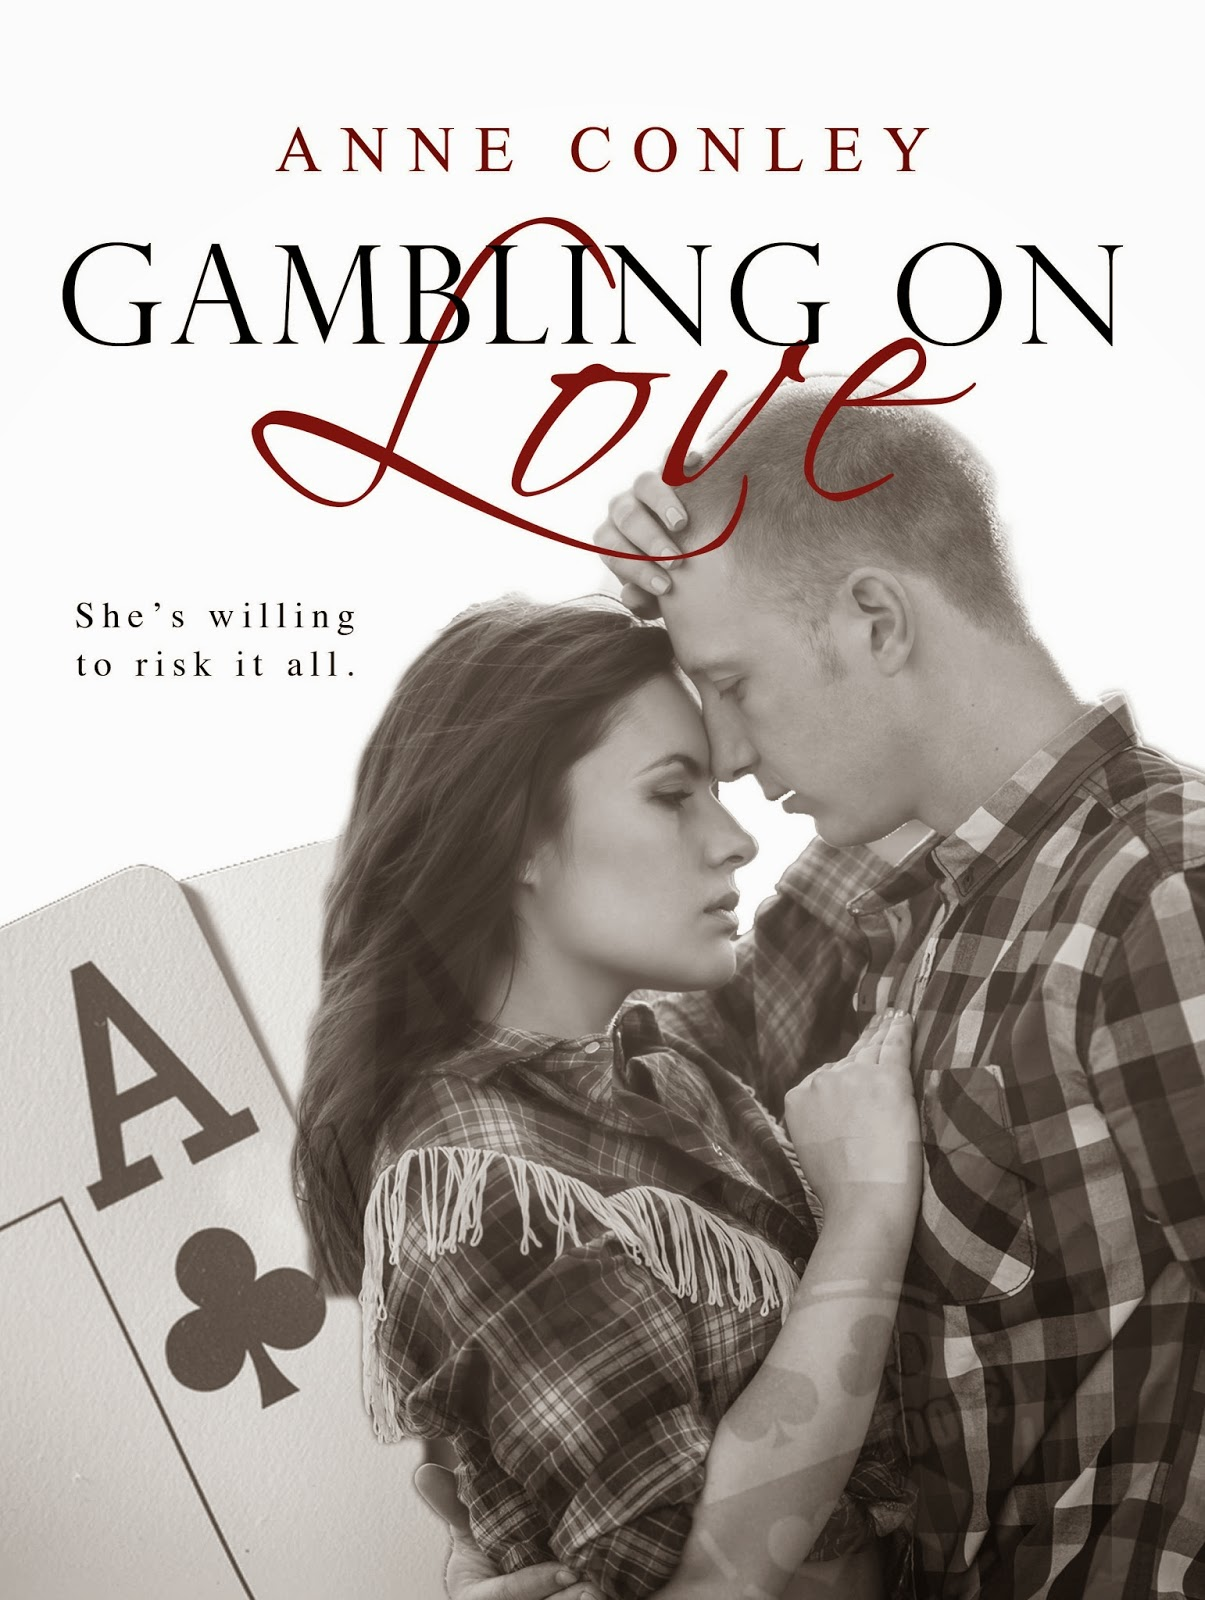 https://www.amazon.com/Gambling-Love-Stories-Serendipity-6-ebook/dp/B00HSV1JK4/ref=as_sl_pc_tf_til?tag=theconcor-20&linkCode=w00&linkId=BLI5XYWJP7QQJIXF&creativeASIN=B00HSV1JK4